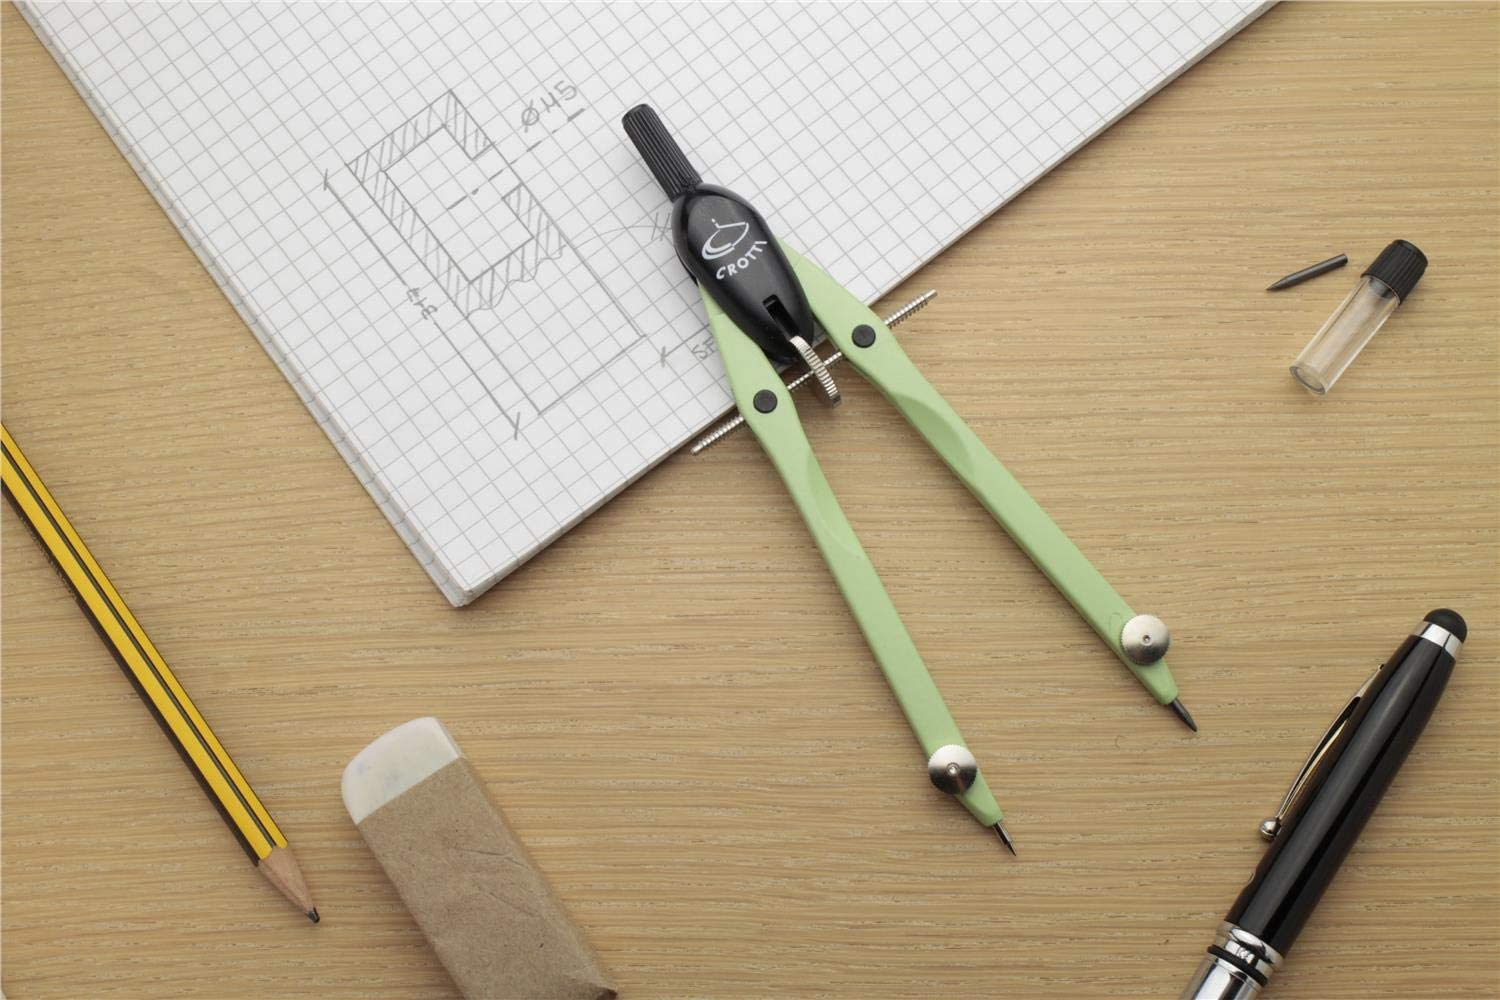 Balaustrone with Fixed rods with micrometric handling Pastel Green.